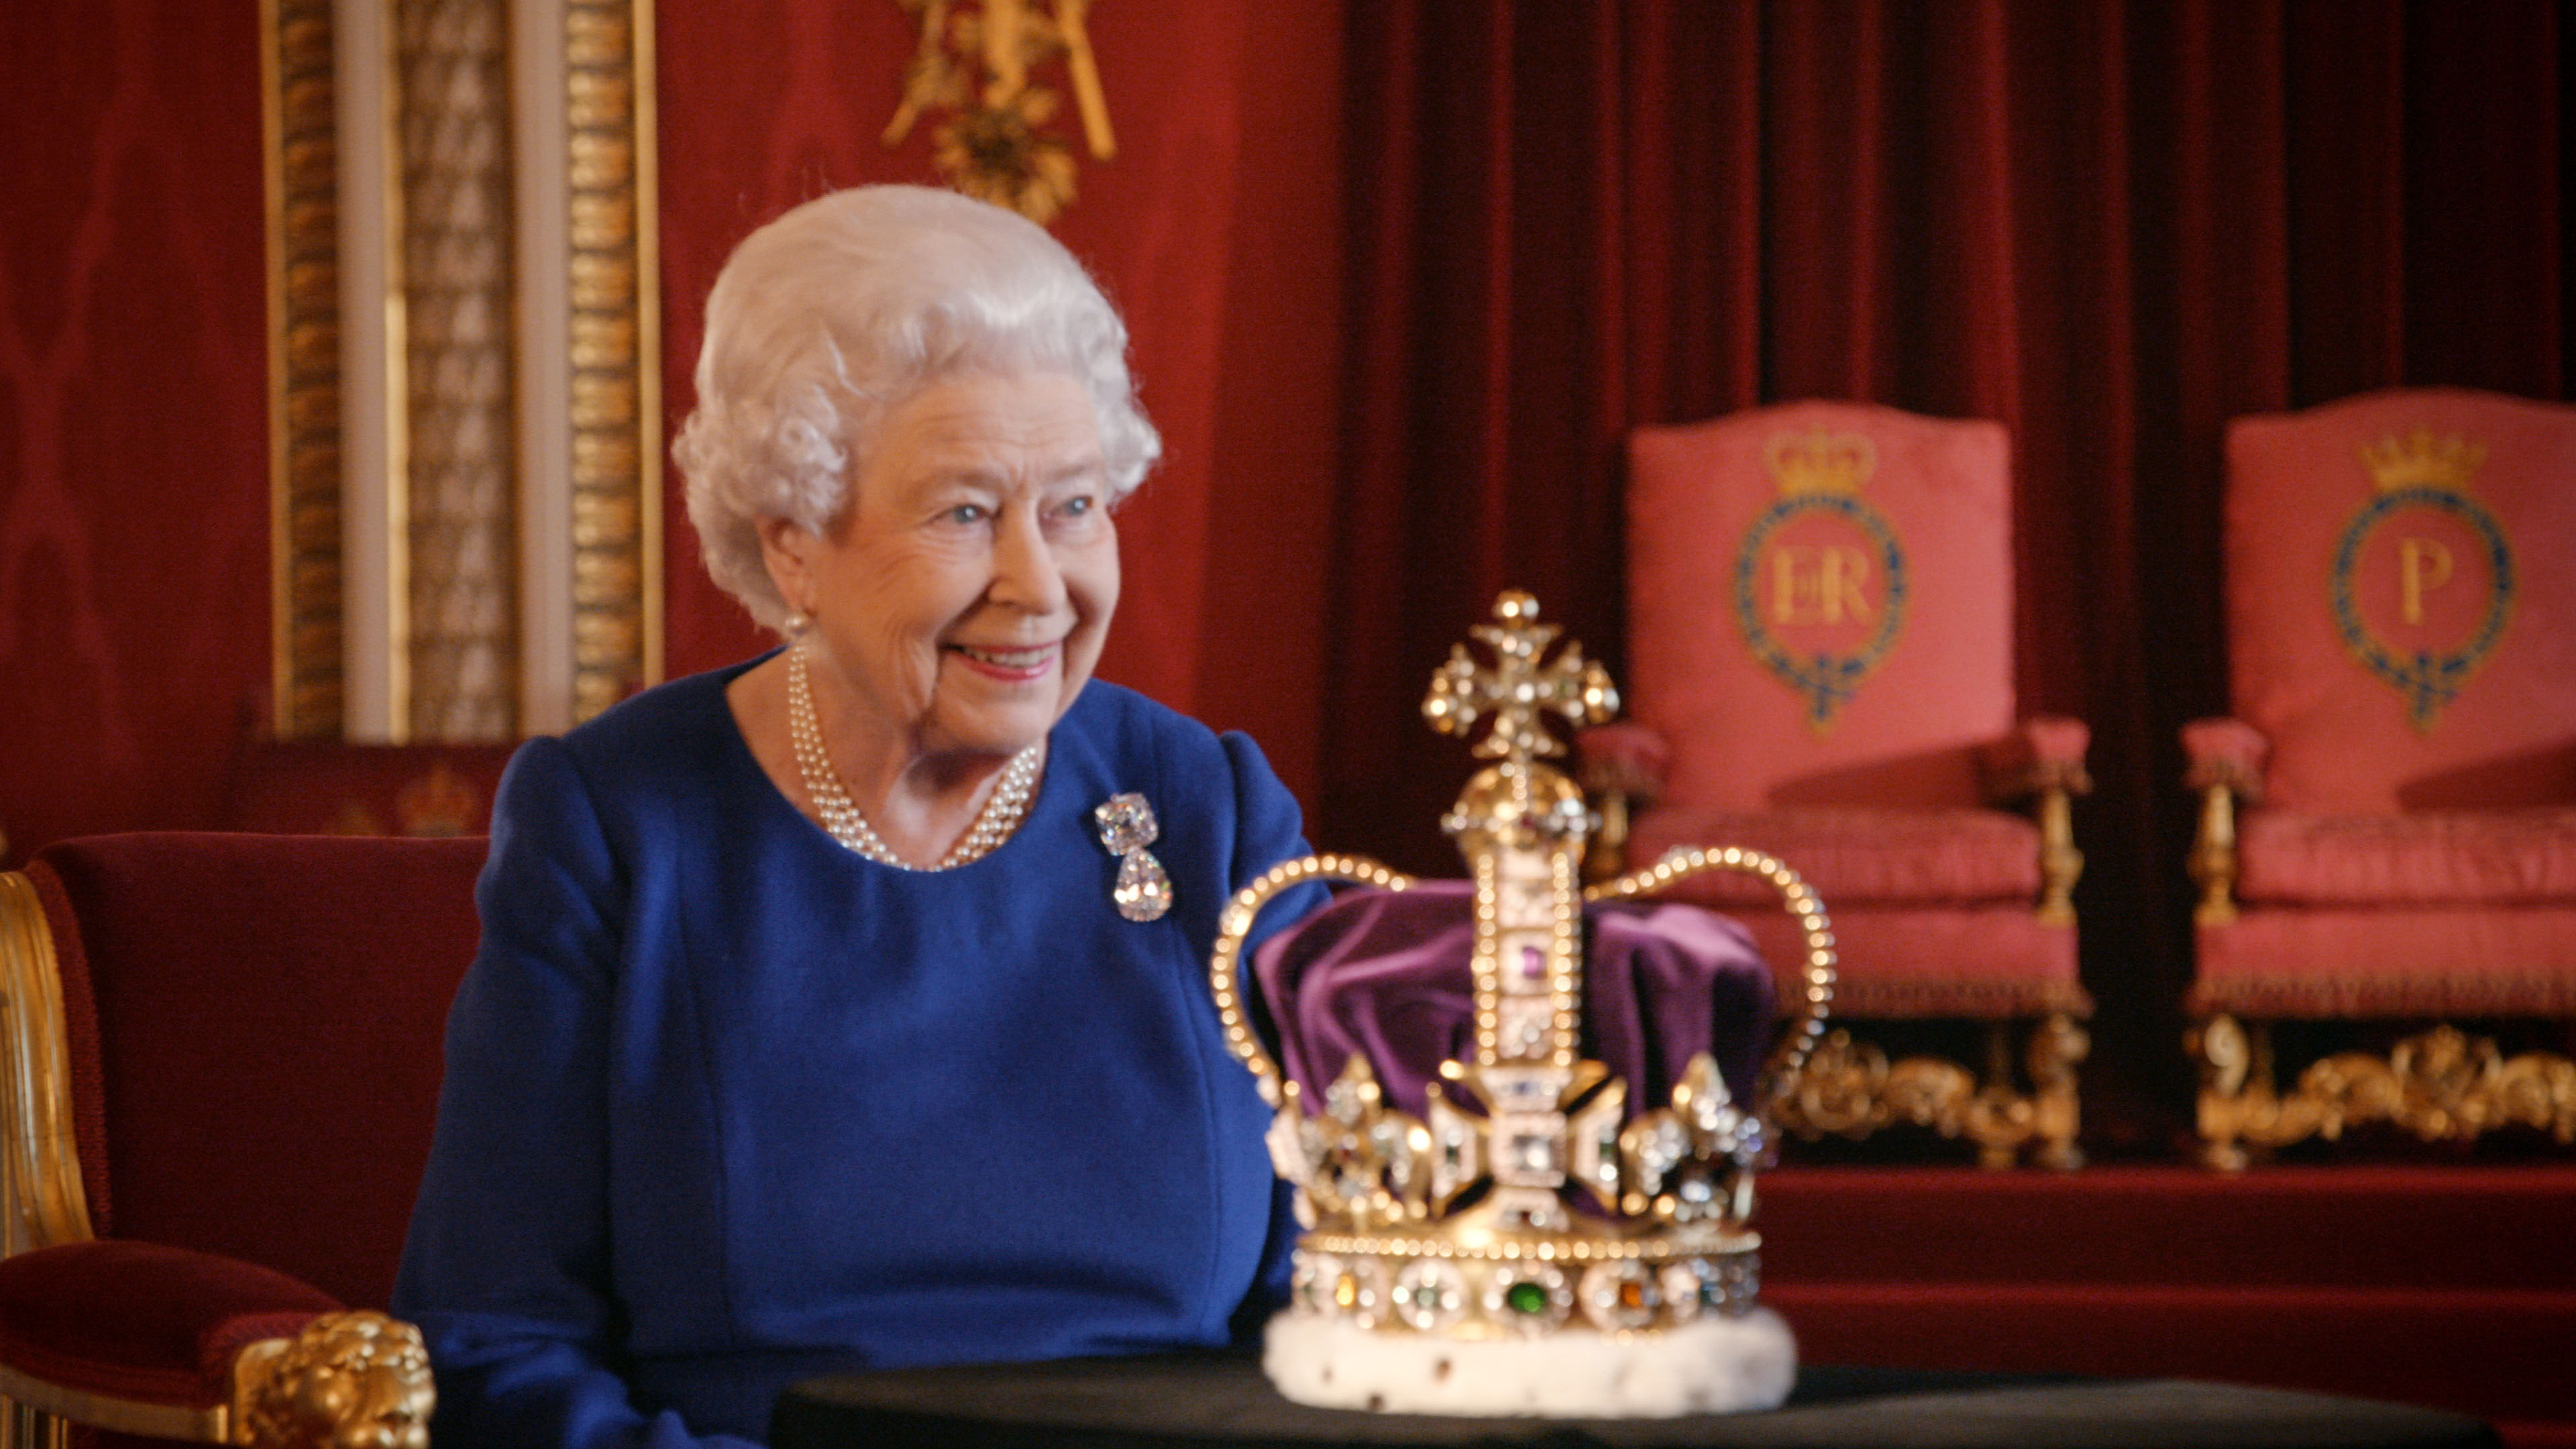 WARNING: Embargoed for publication until 00:01:00 on 03/01/2018 - Programme Name: The Coronation  - TX: n/a - Episode: n/a (No. n/a) - Picture Shows: with the St Edward's Crown.  **STRICTLY EMBARGOED NOT FOR PUBLICATION UNTIL 00.01 HOURS ON WEDNESDAY 3RD JANUARY 2018**  For single use only and only in connection with editorial about 'The Coronation' on BBC One, Smithsonian and ABC and distributed by FreMantle until 1 March 2018. Images must not be archived, edited, or sold-on. Her Majesty The Queen - (C) © Royal Collection Trust/ Her Majesty Queen Elizabeth II 2018 - Photographer: Screengrab